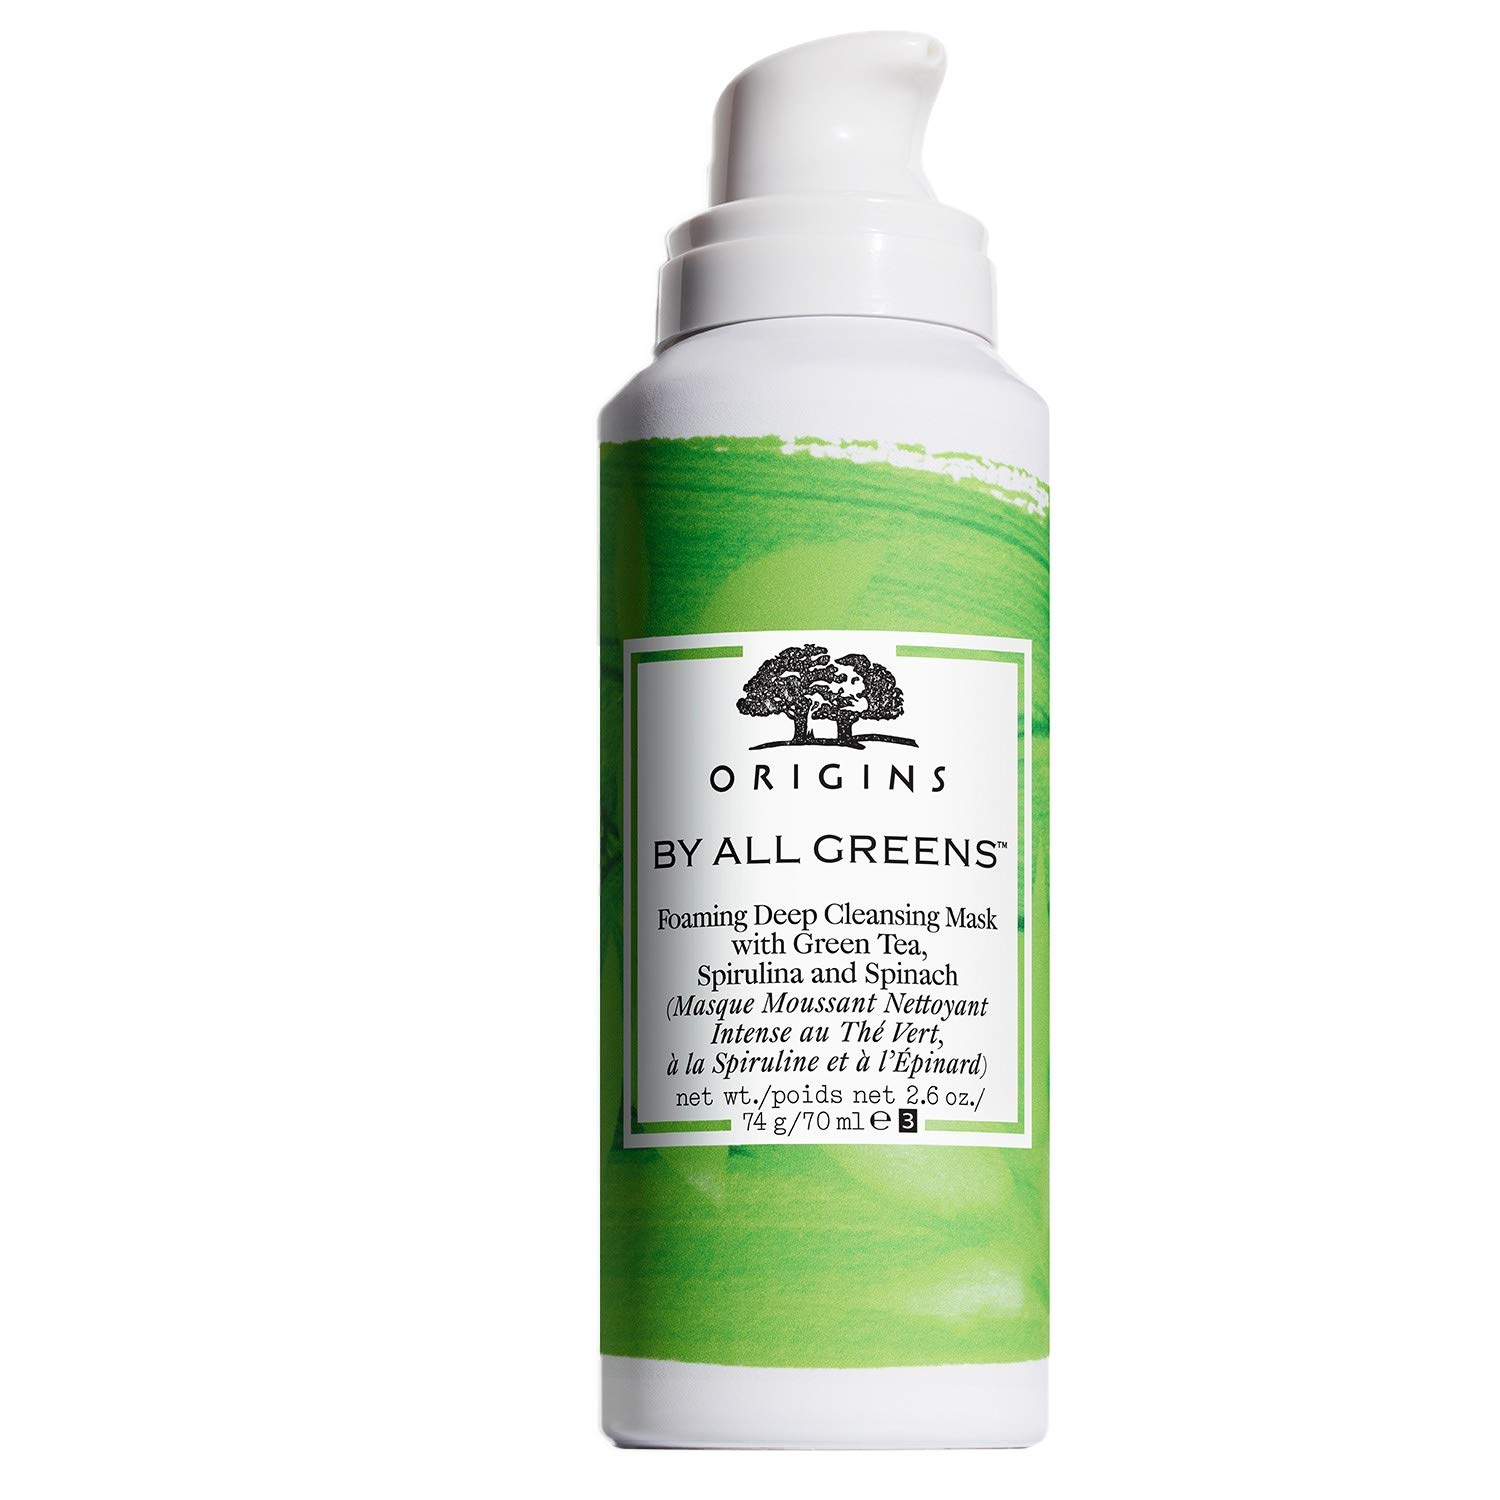 By All Greens Foaming Deep Cleansing Mask With Green Tea, Spirulina & Spinach